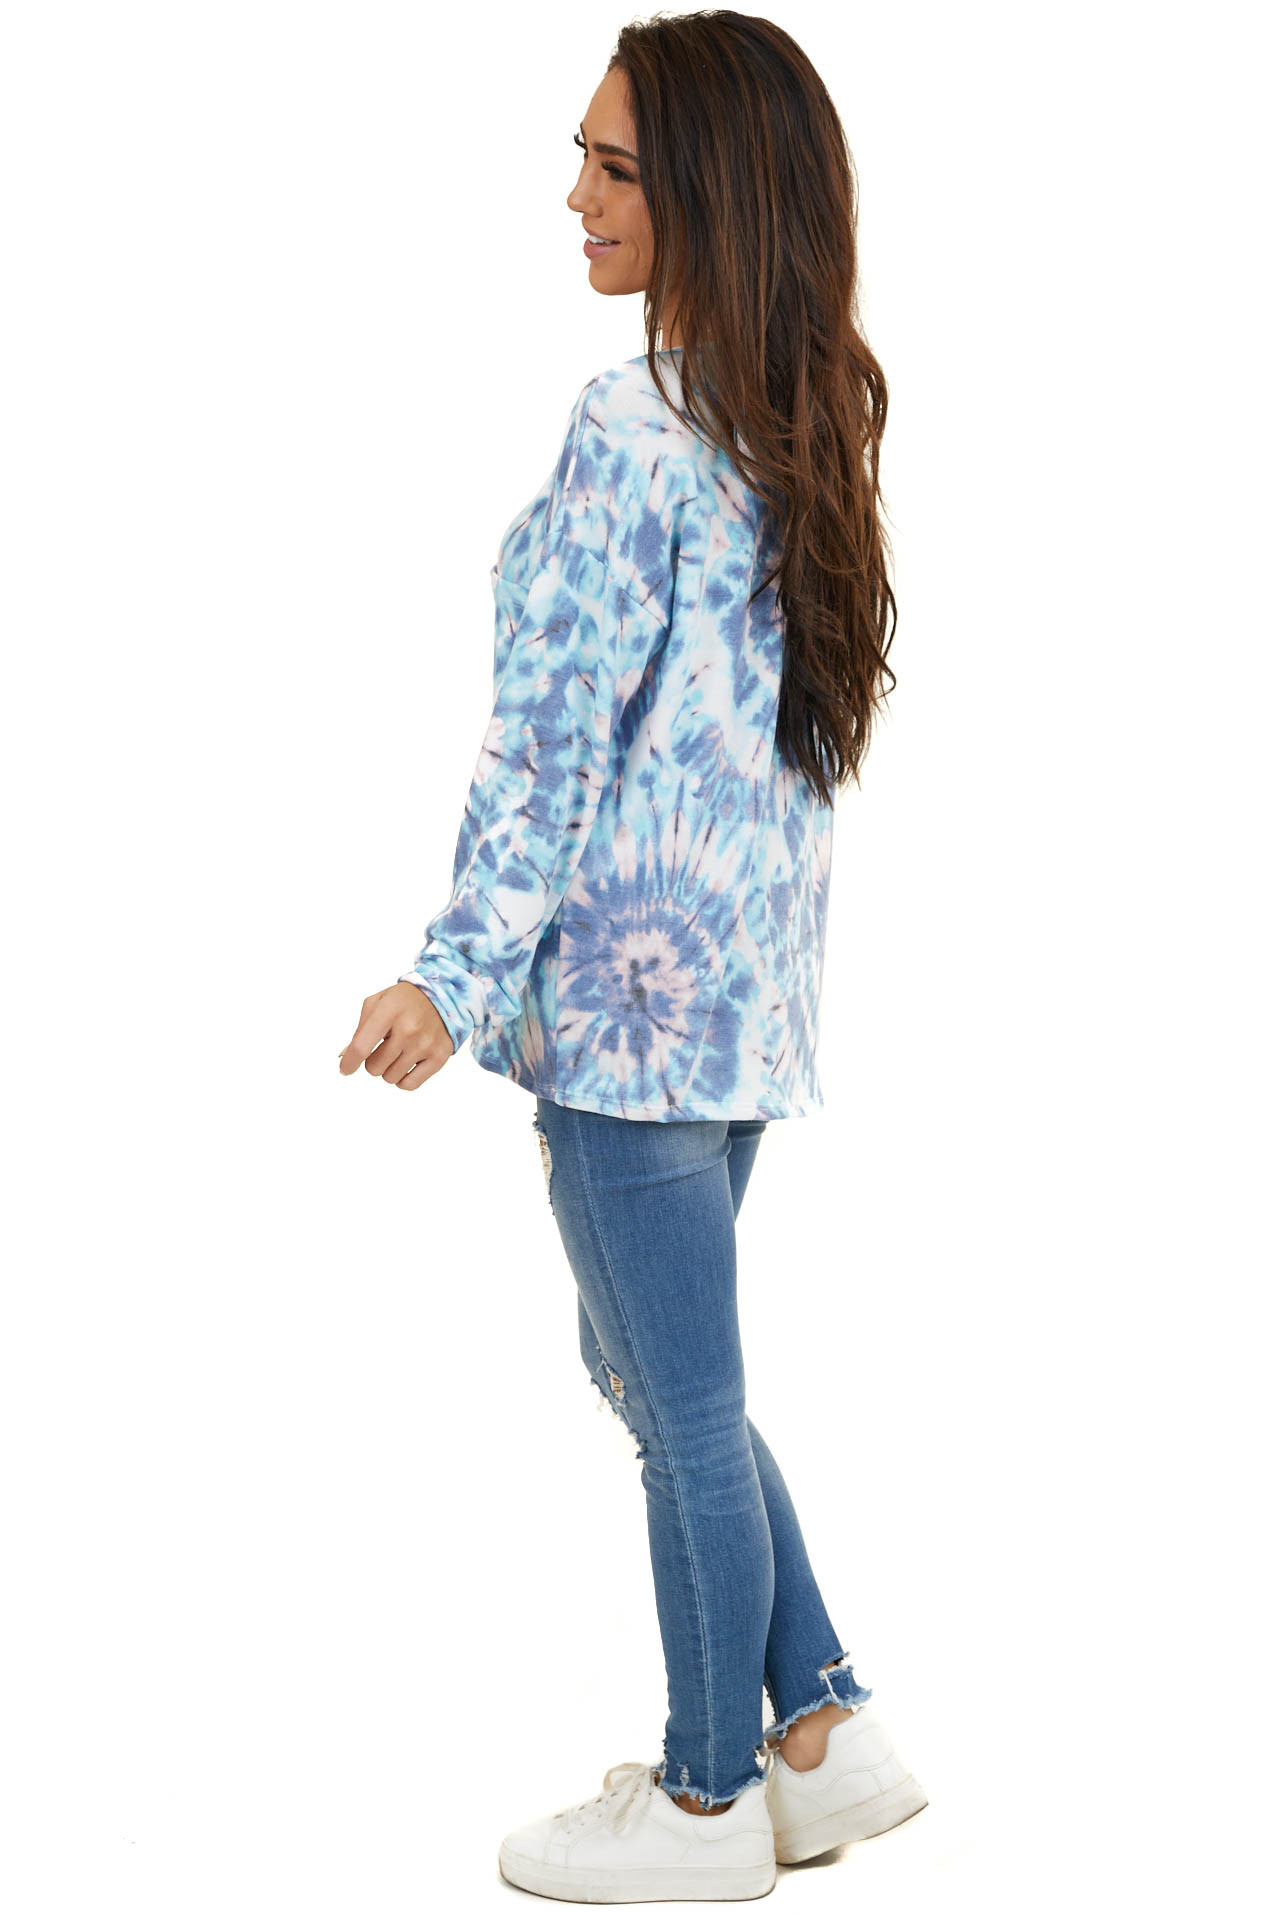 Sky Blue and Blush Tie Dye Long Sleeve with Front Pocket